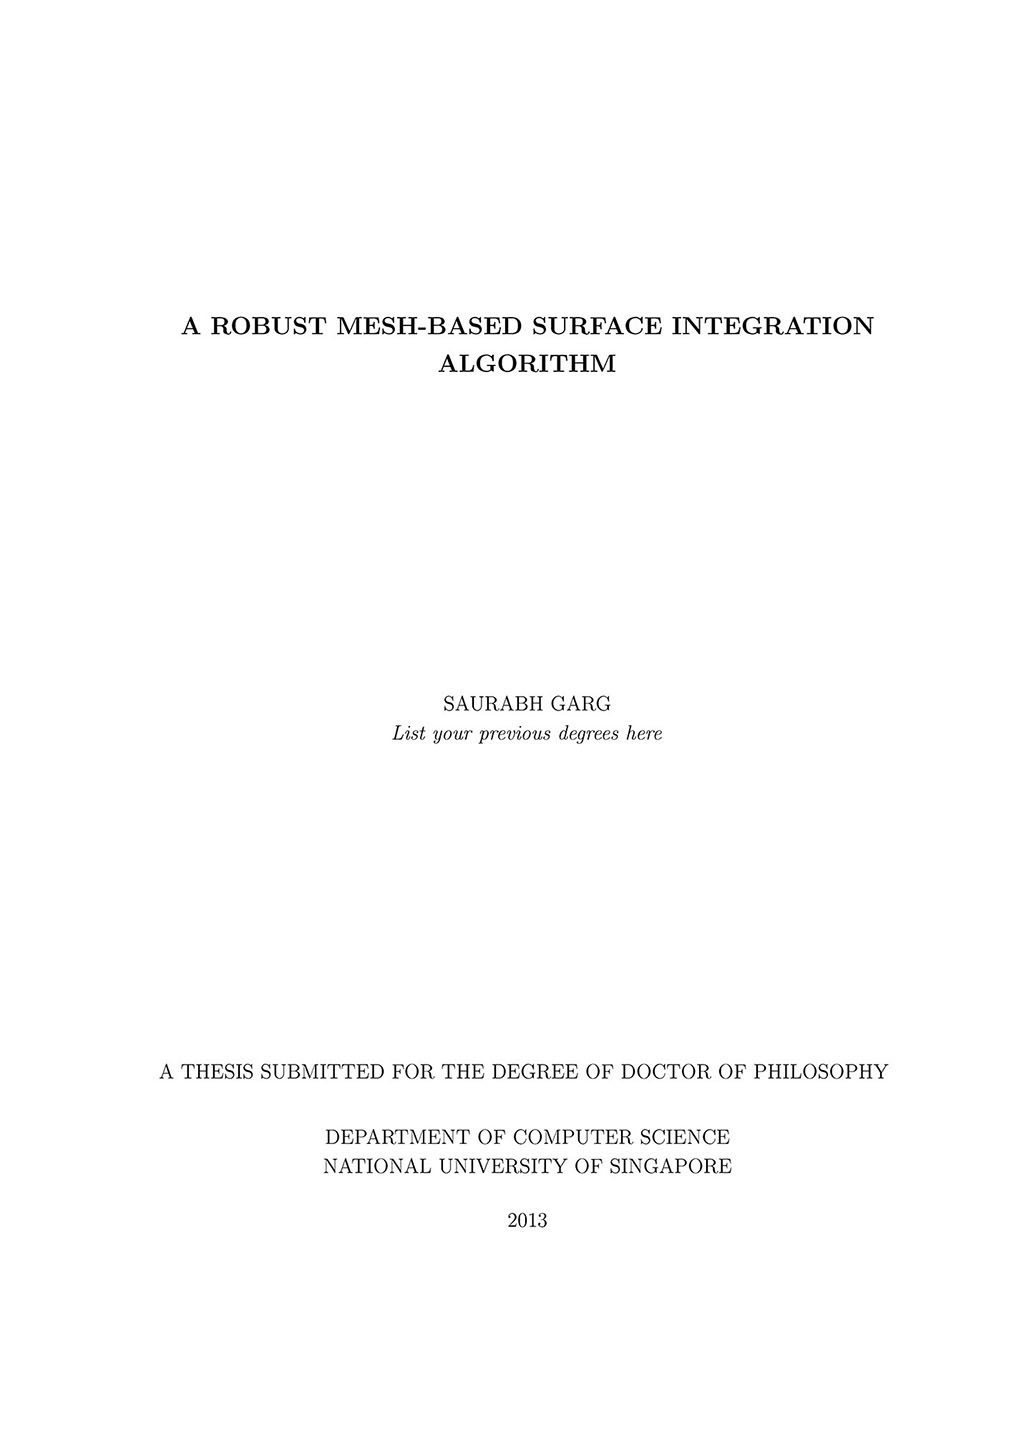 Nus business school thesis submission